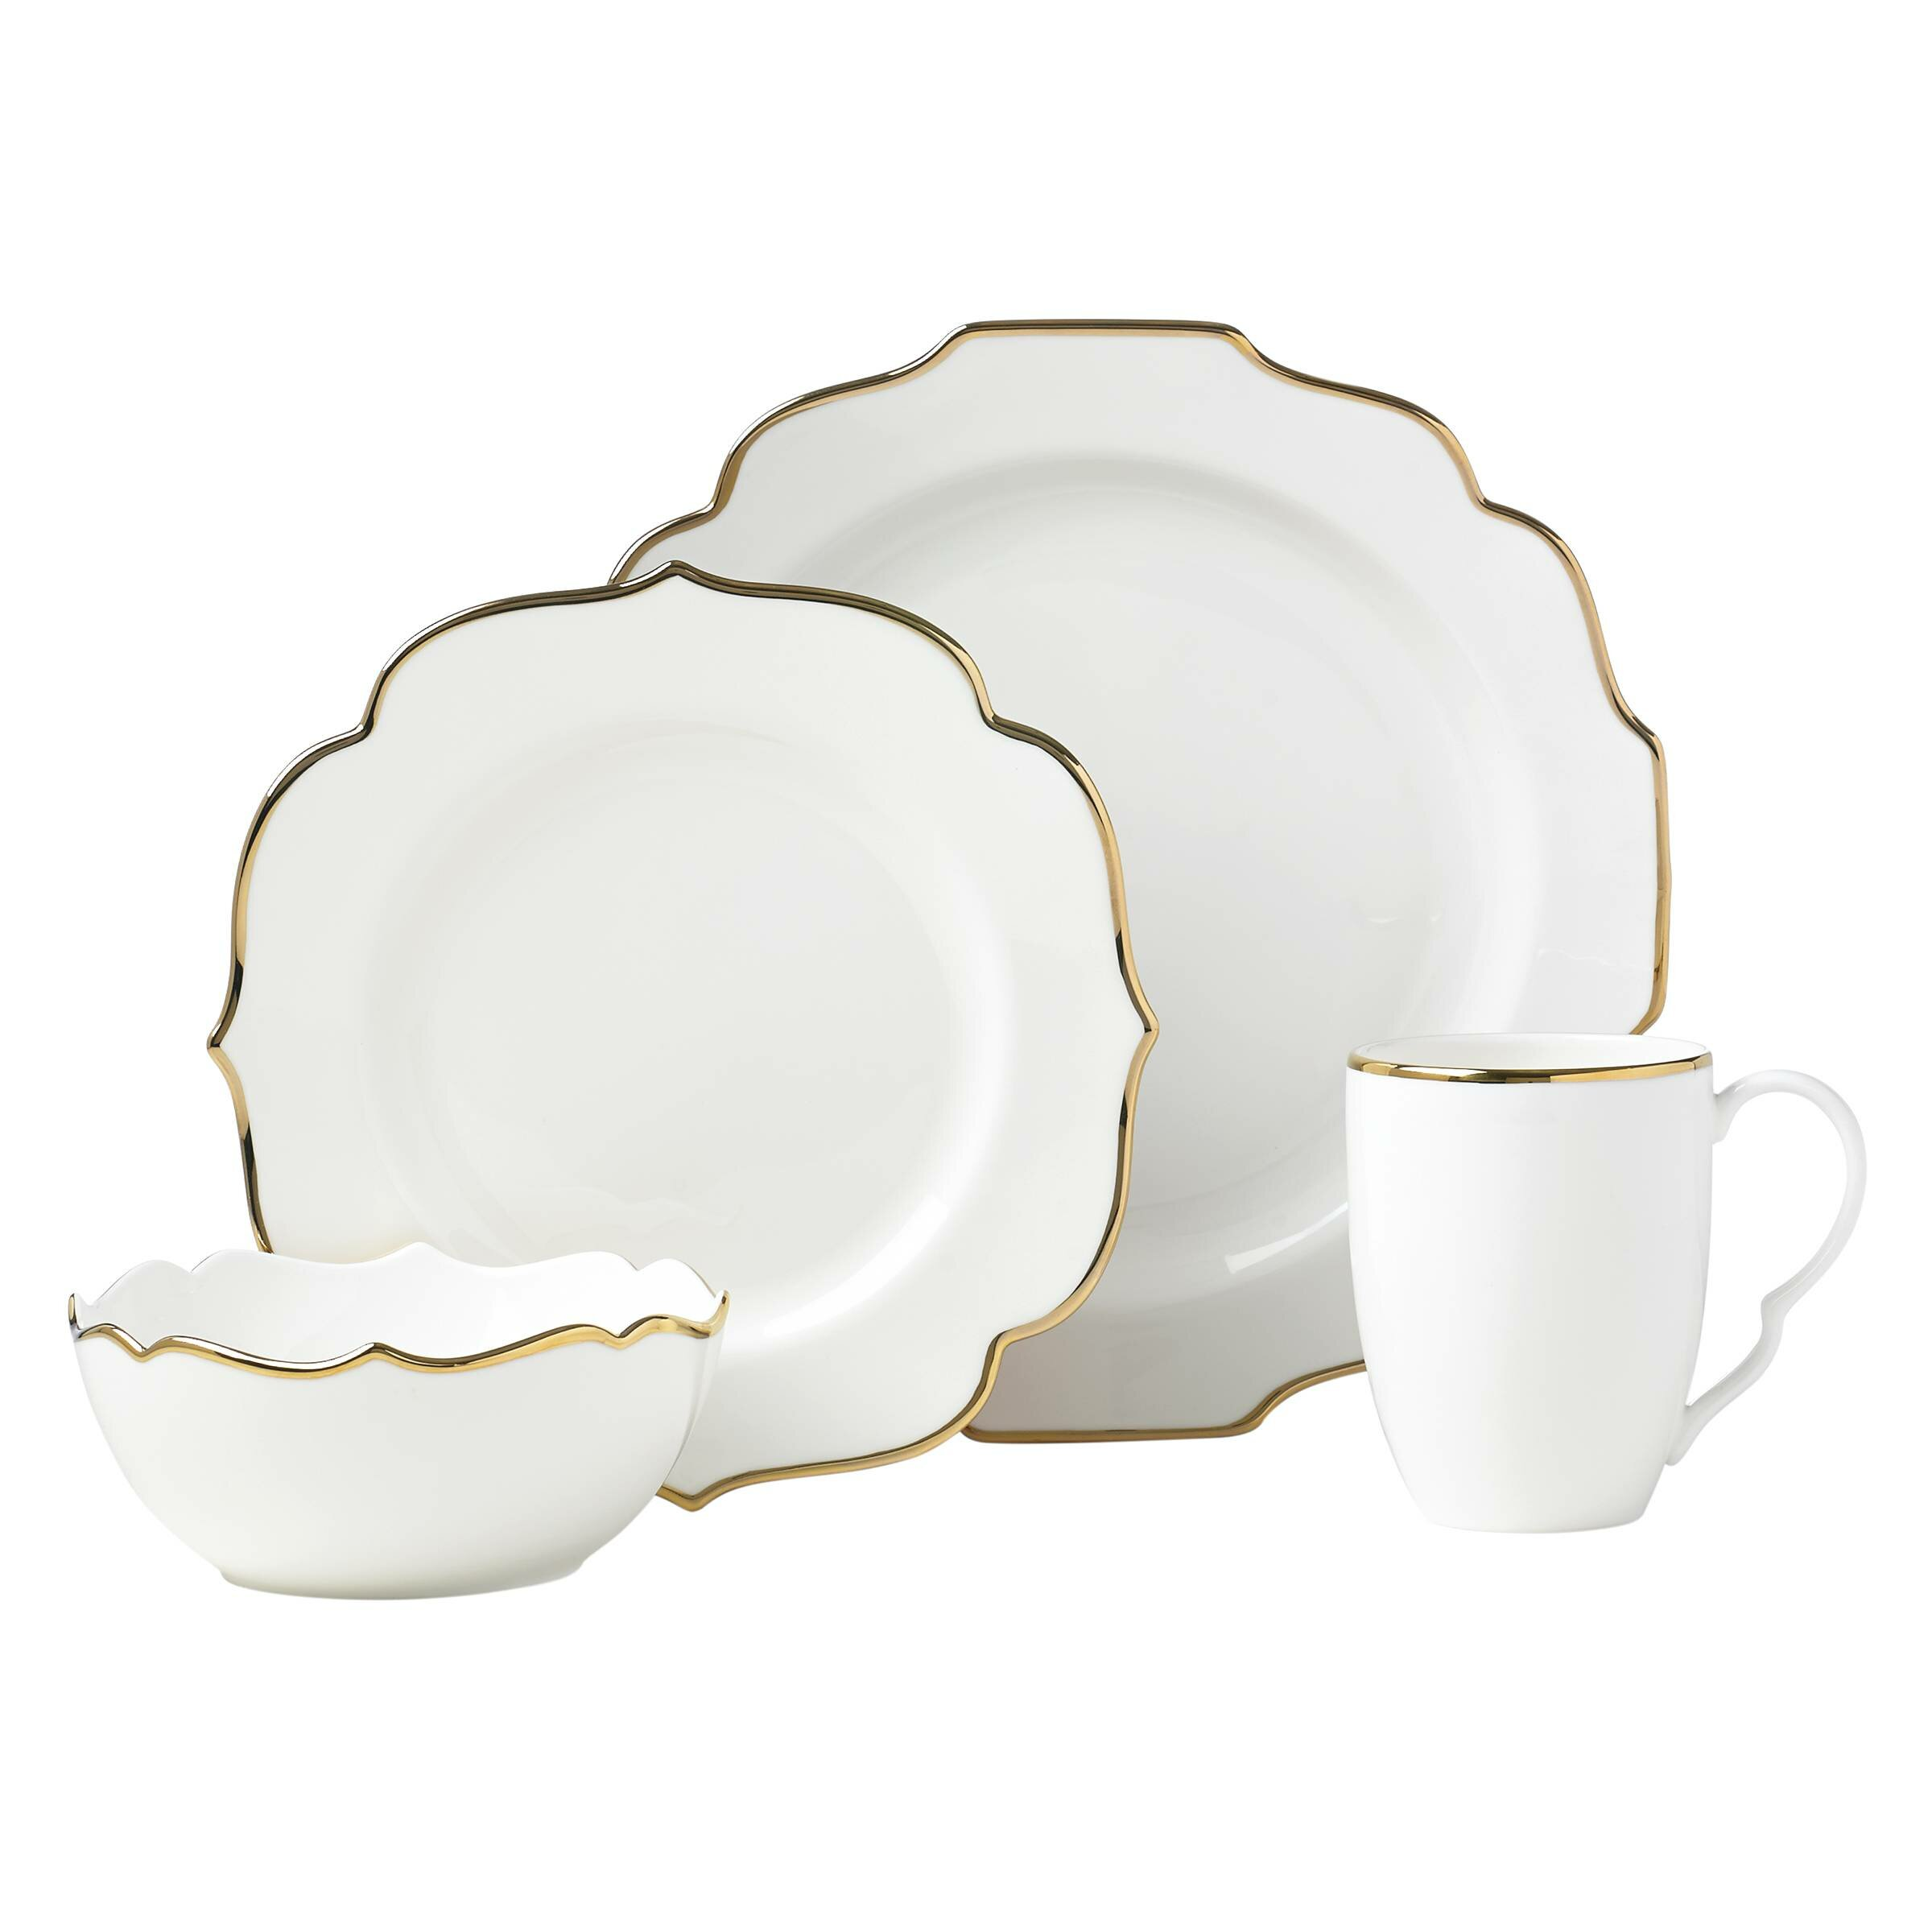 Lenox Contempo Luxe 4 Piece Place Setting, Service for 1 | Wayfair